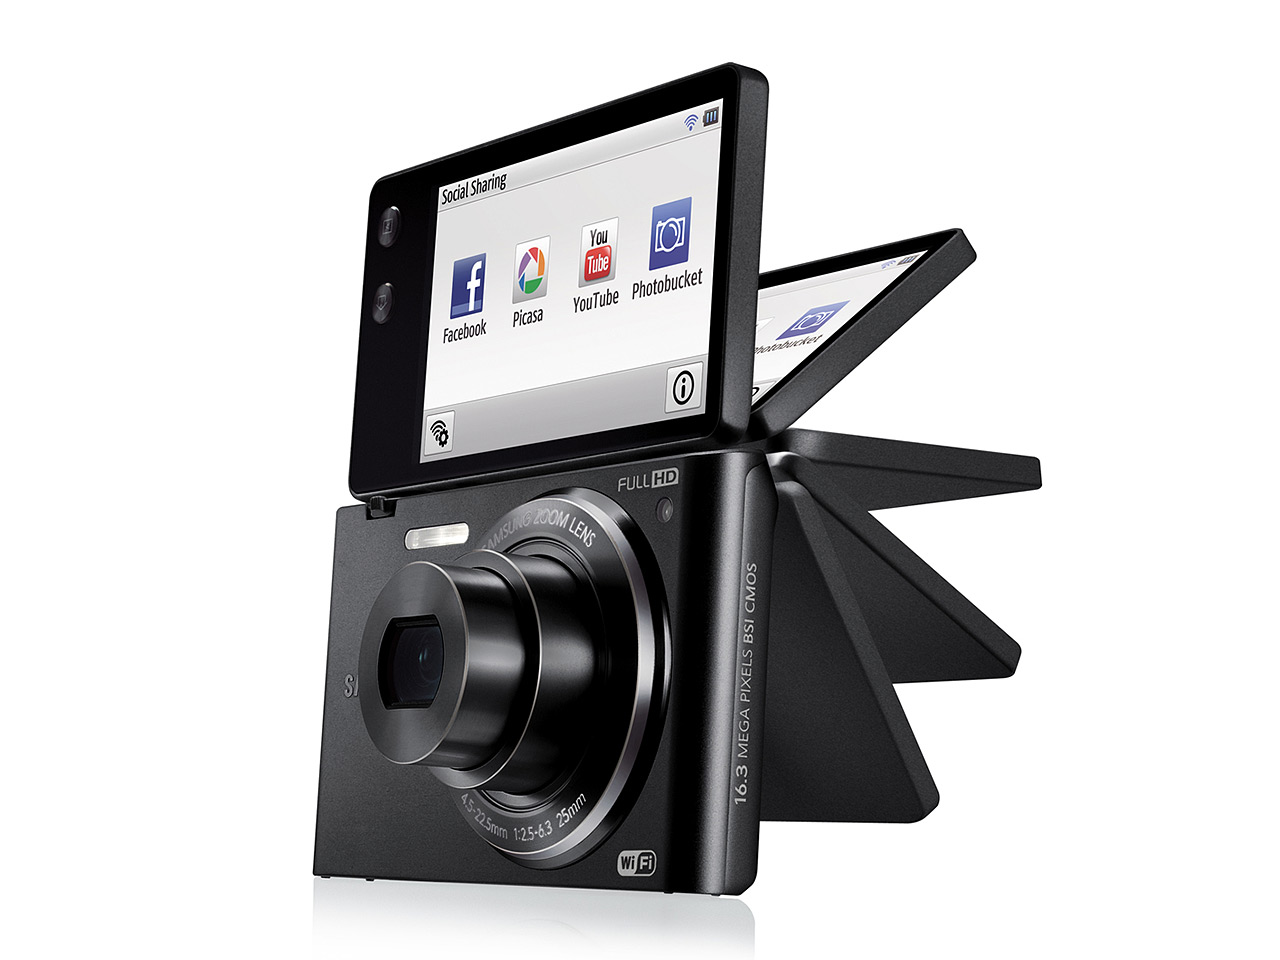 Samsung launches mv900f flip screen wi fi compact digital samsungs mv900f camera delivers beautiful portraits from any angle plus built in wi fi sharing on the go easy ccuart Choice Image